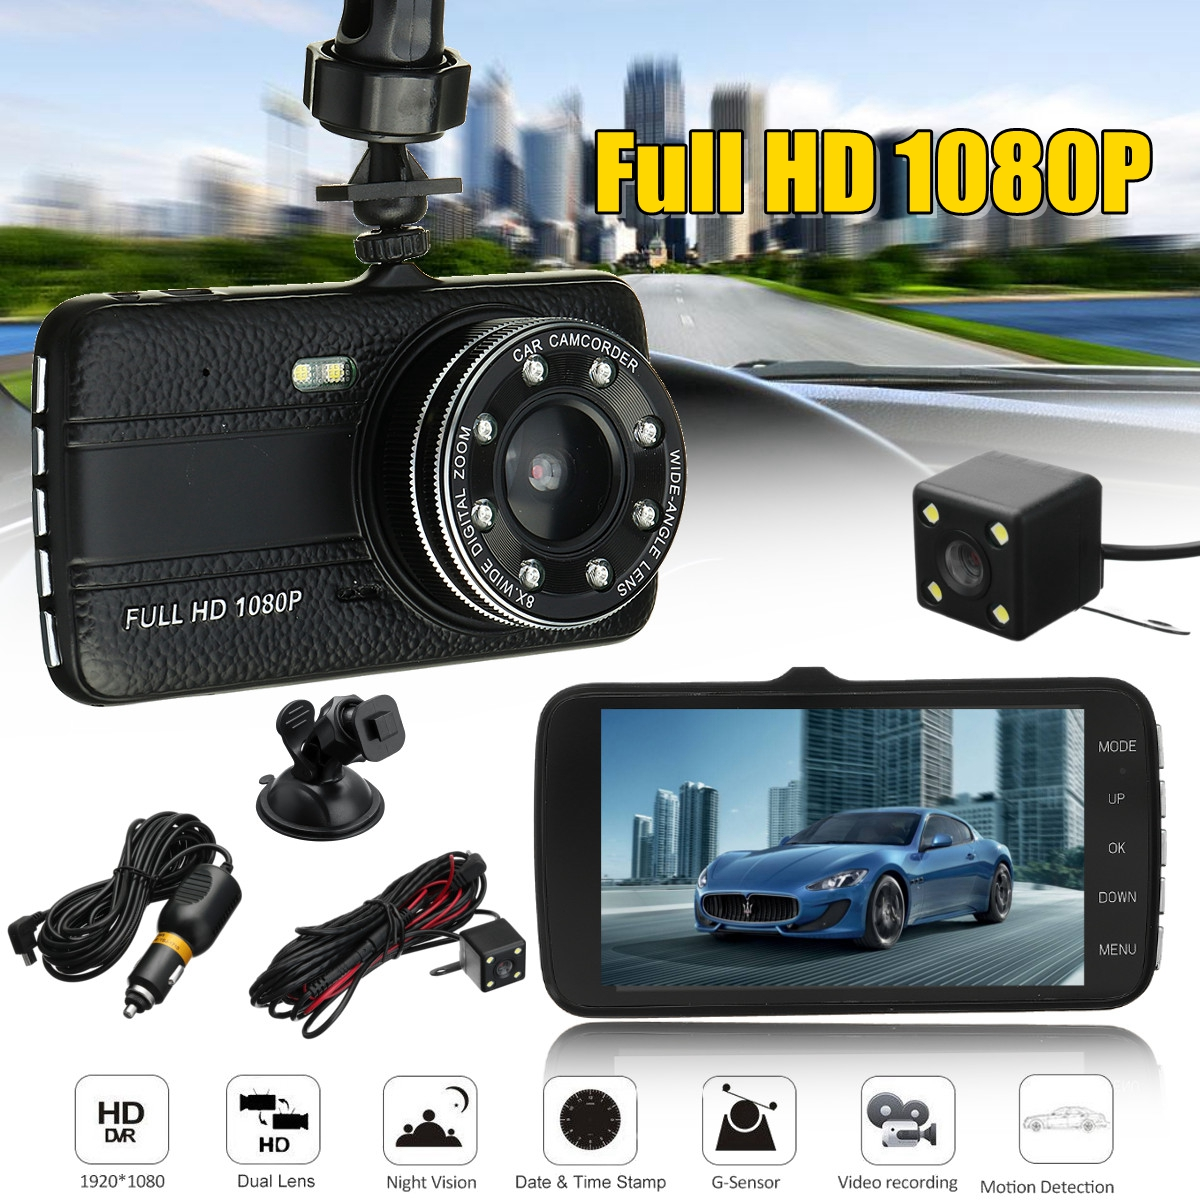 4inch Full screen IPS Screen Dual Lens Car DVR Camera Full HD 1080P Front+Rear View Camera Night Vision dash cam Parking Monitor